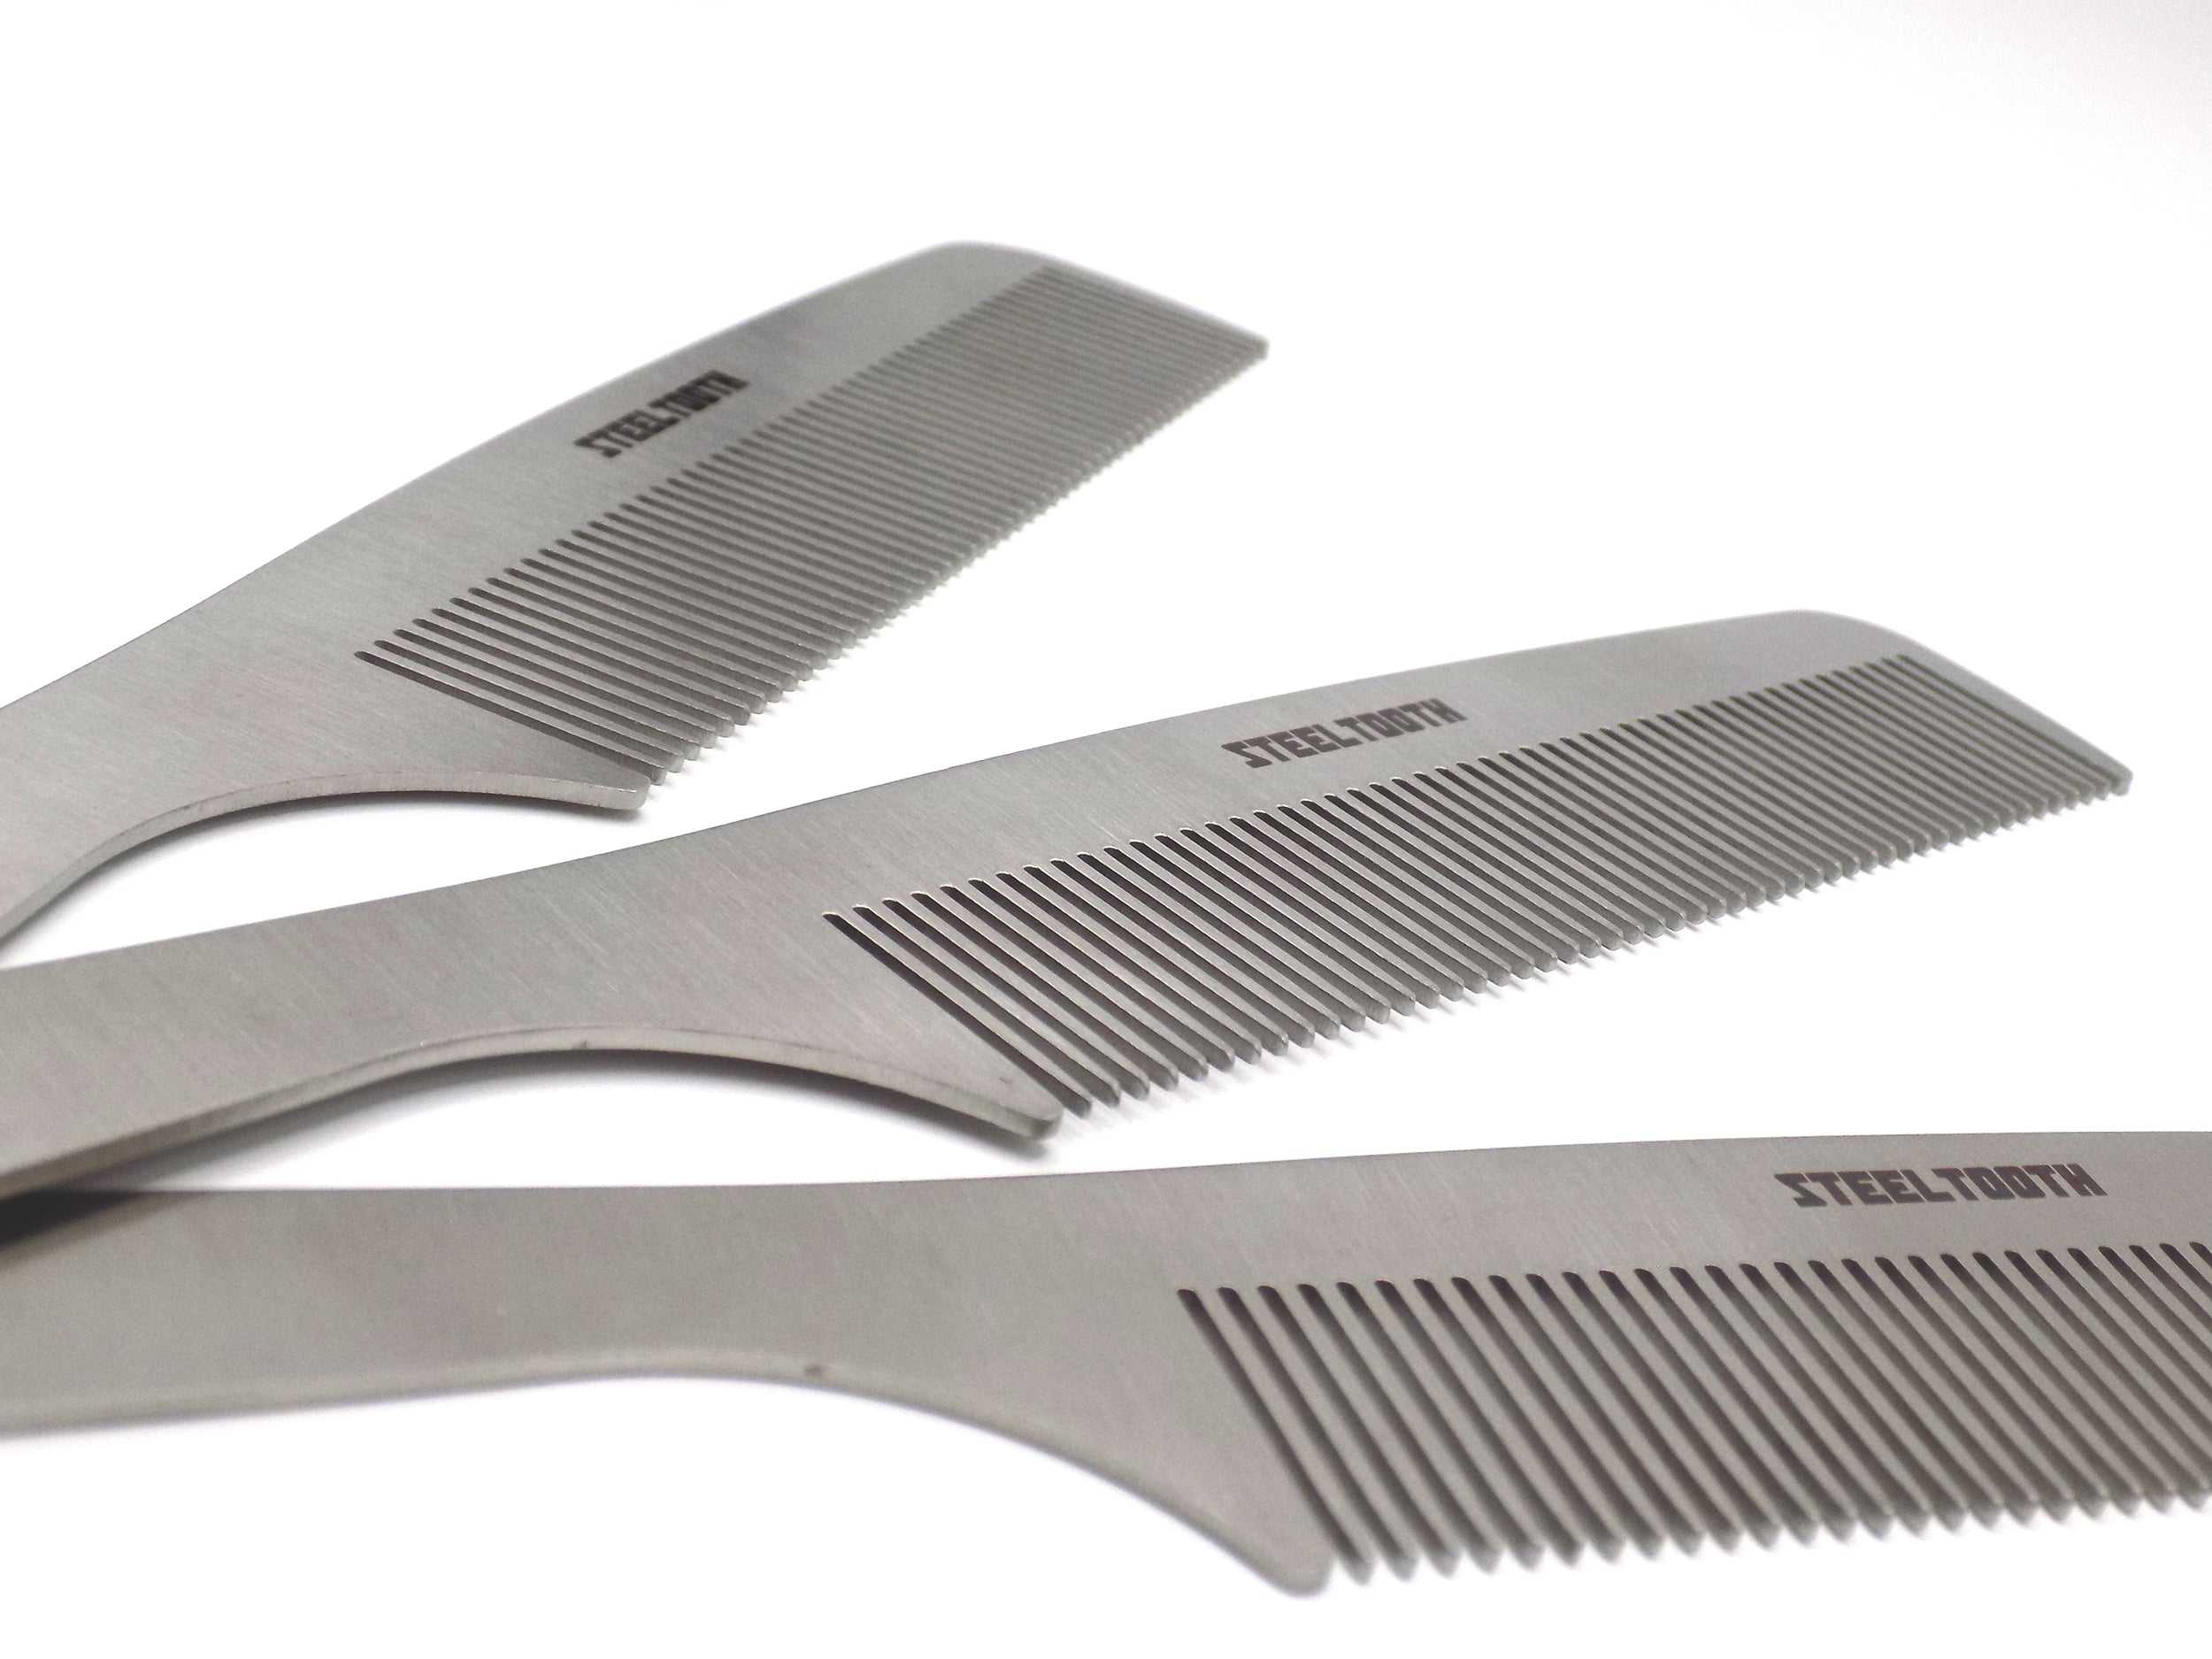 The flagship steeltooth comb model. It has a handle and the material is made of stainless steel.